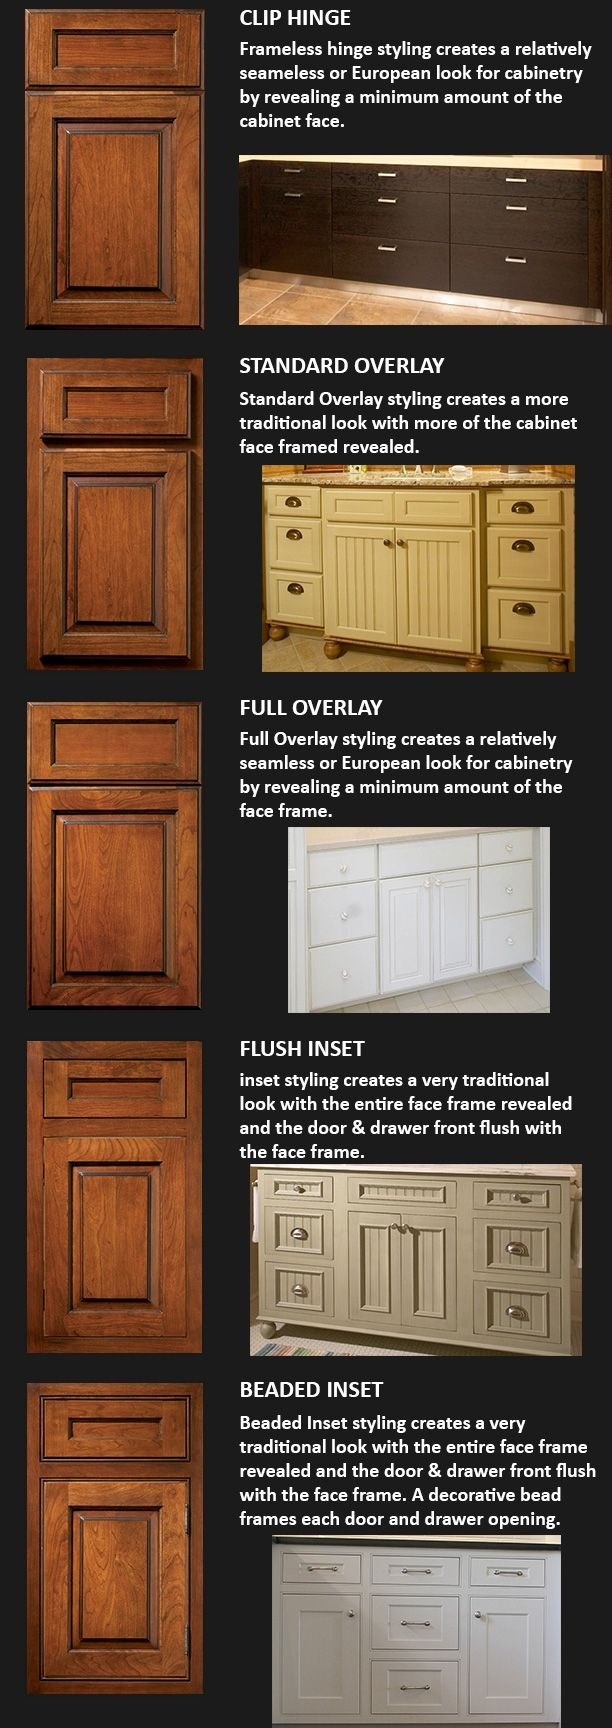 Kitchen cabinet false drawer clips - With Frameless Cabinets You Can T Have Partial Ol Or Inset So It